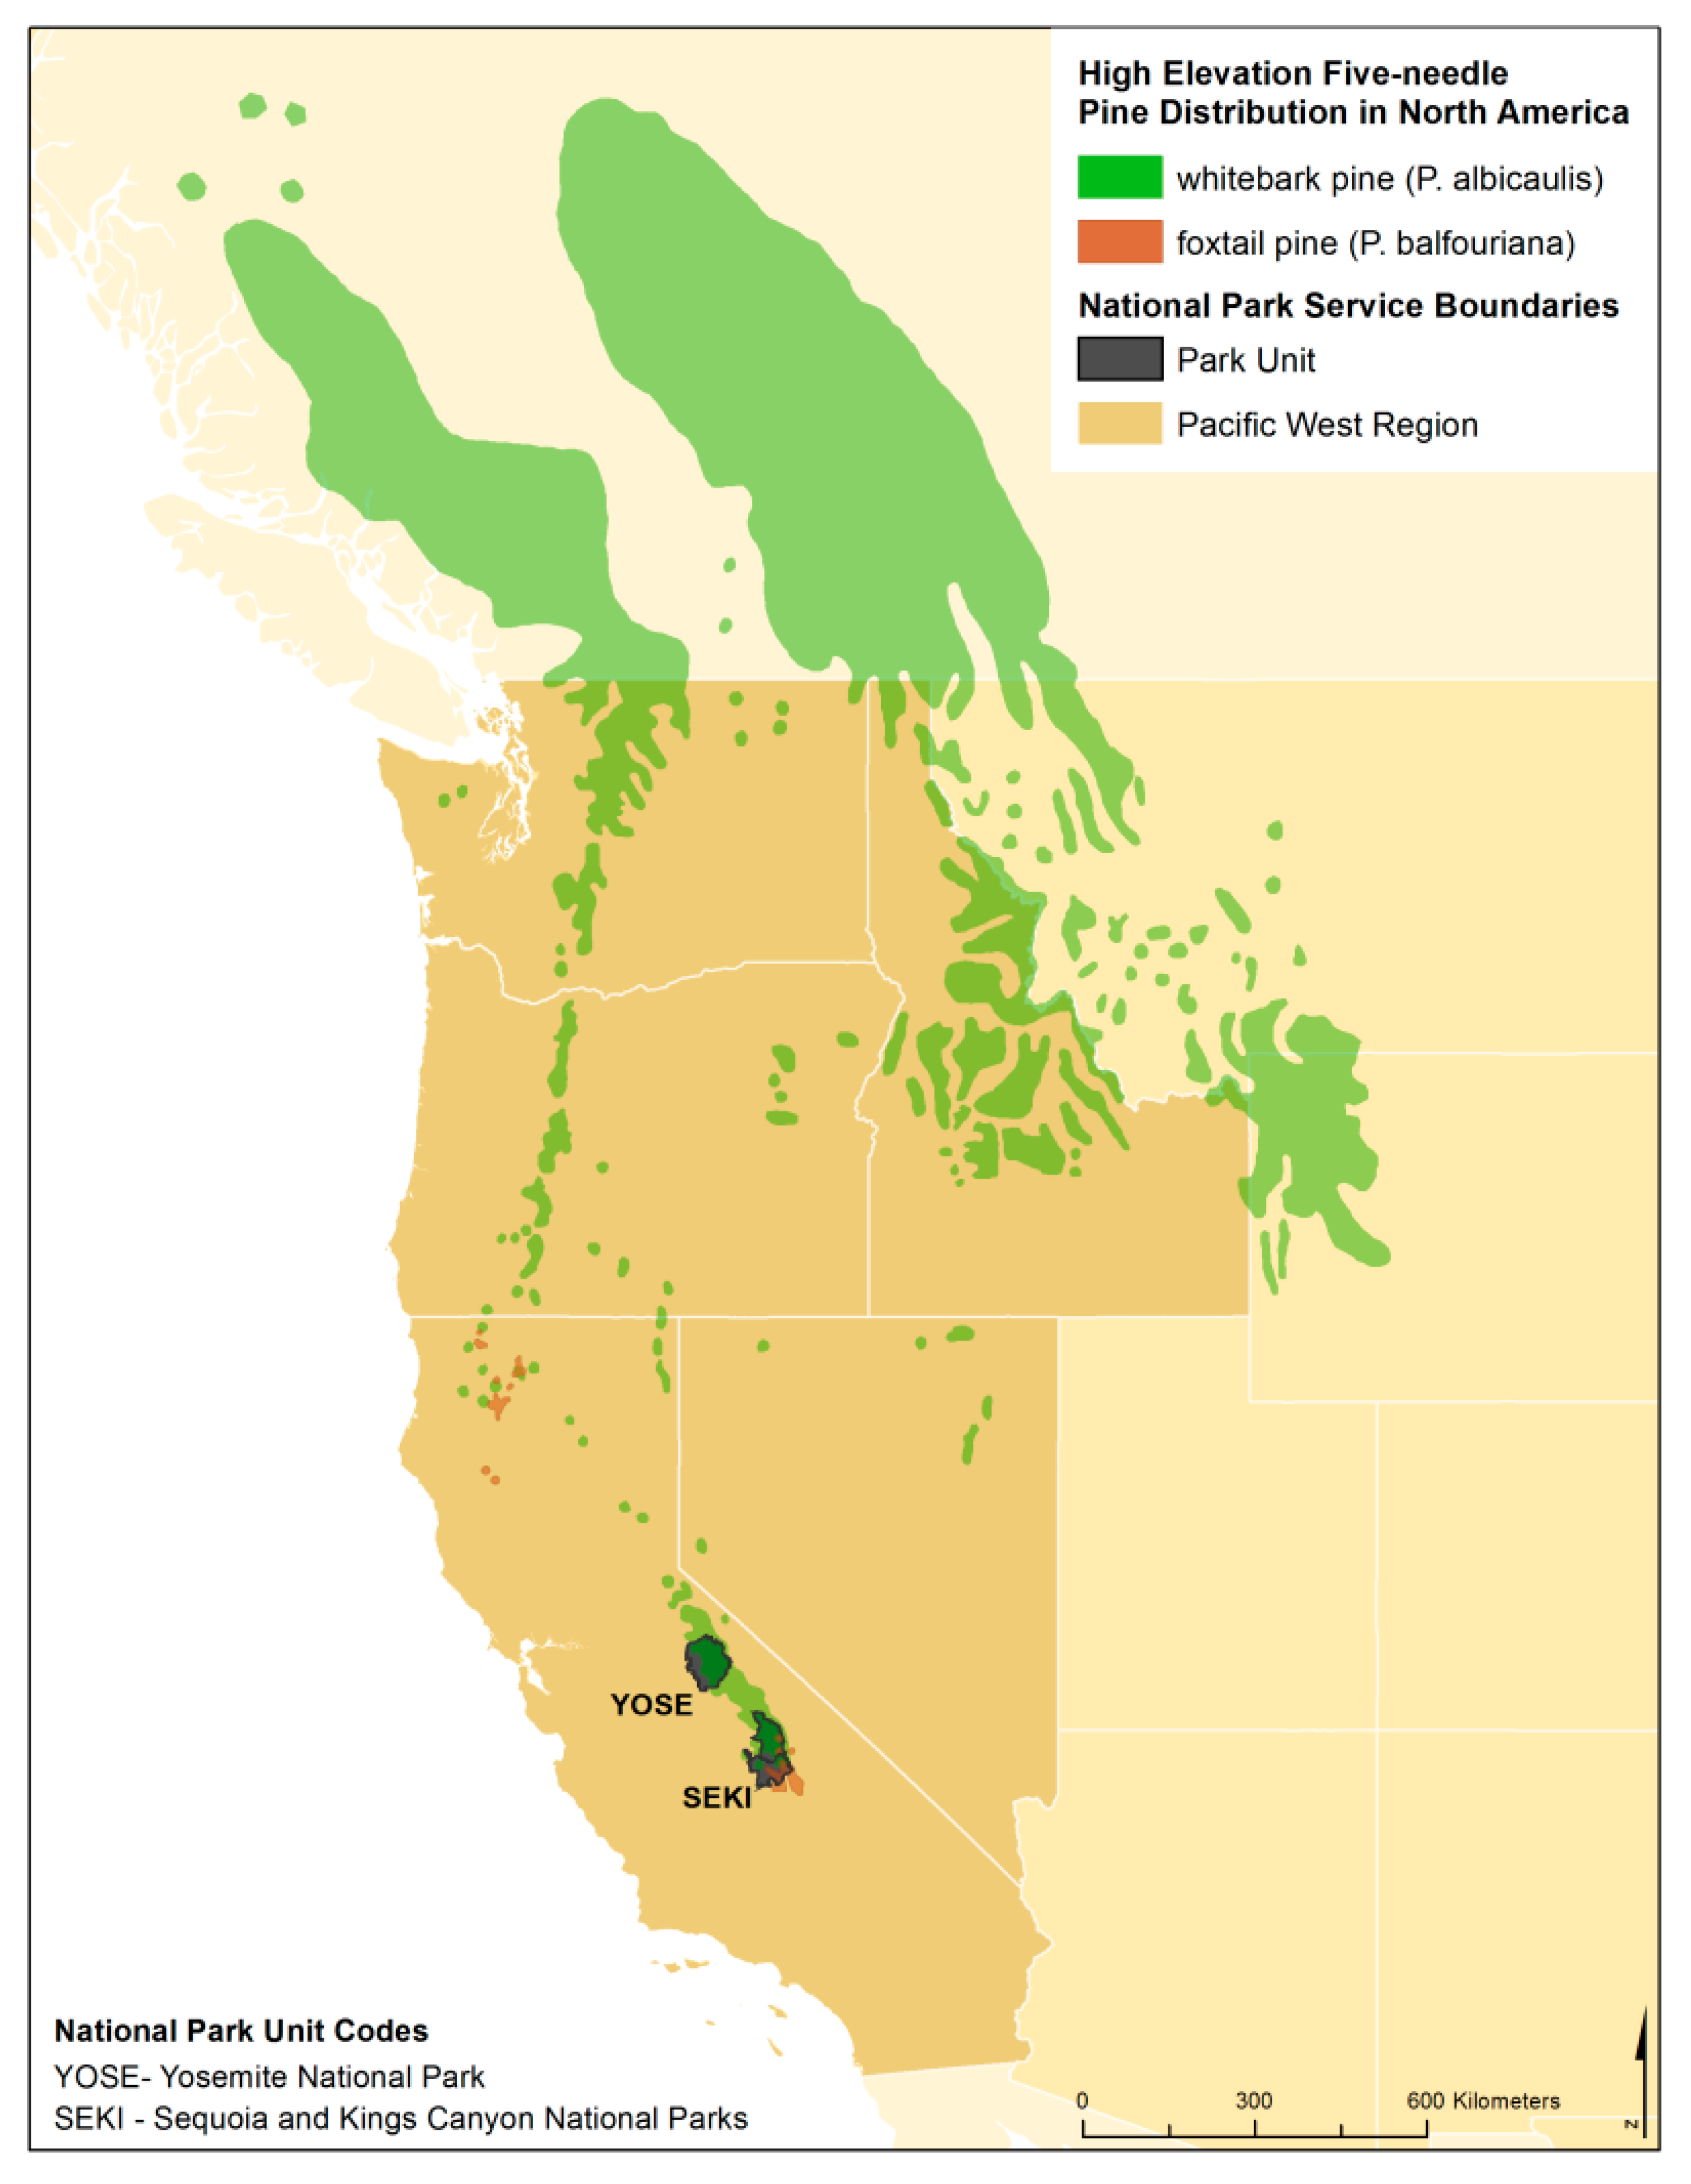 Forests | Free Full-Text | Whitebark and Foxtail Pine in